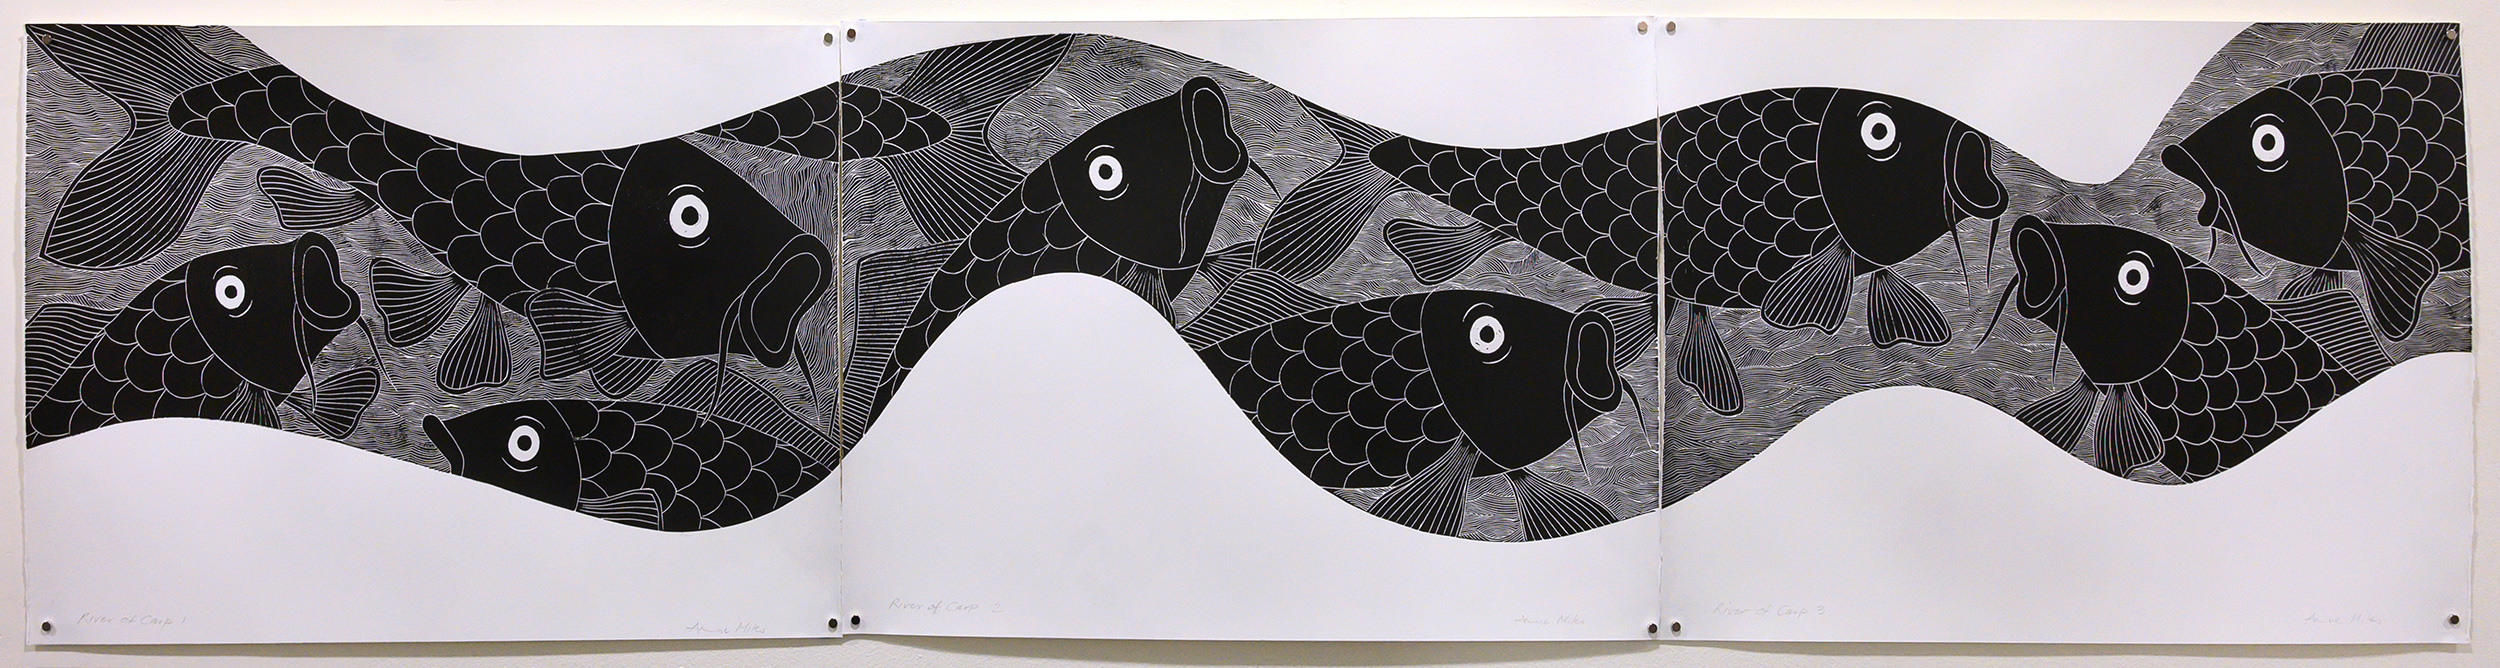 Unframed artwork by Anne Miles of multiple large black and white Carp within a flowing river shape